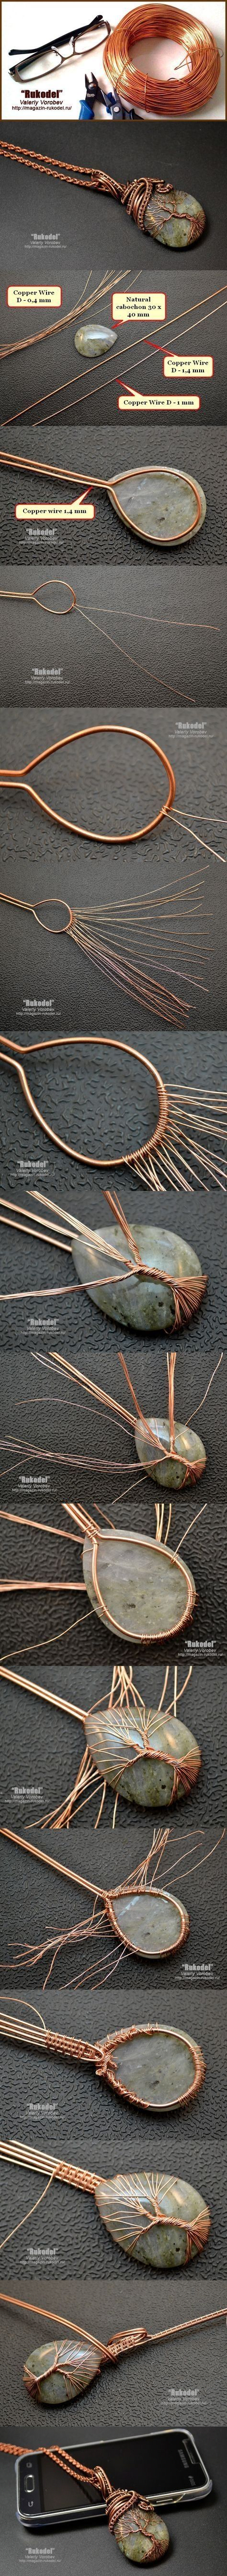 Simple Wire Wrap Tree Tutorial by claire_welhoelter   New hobbies ...